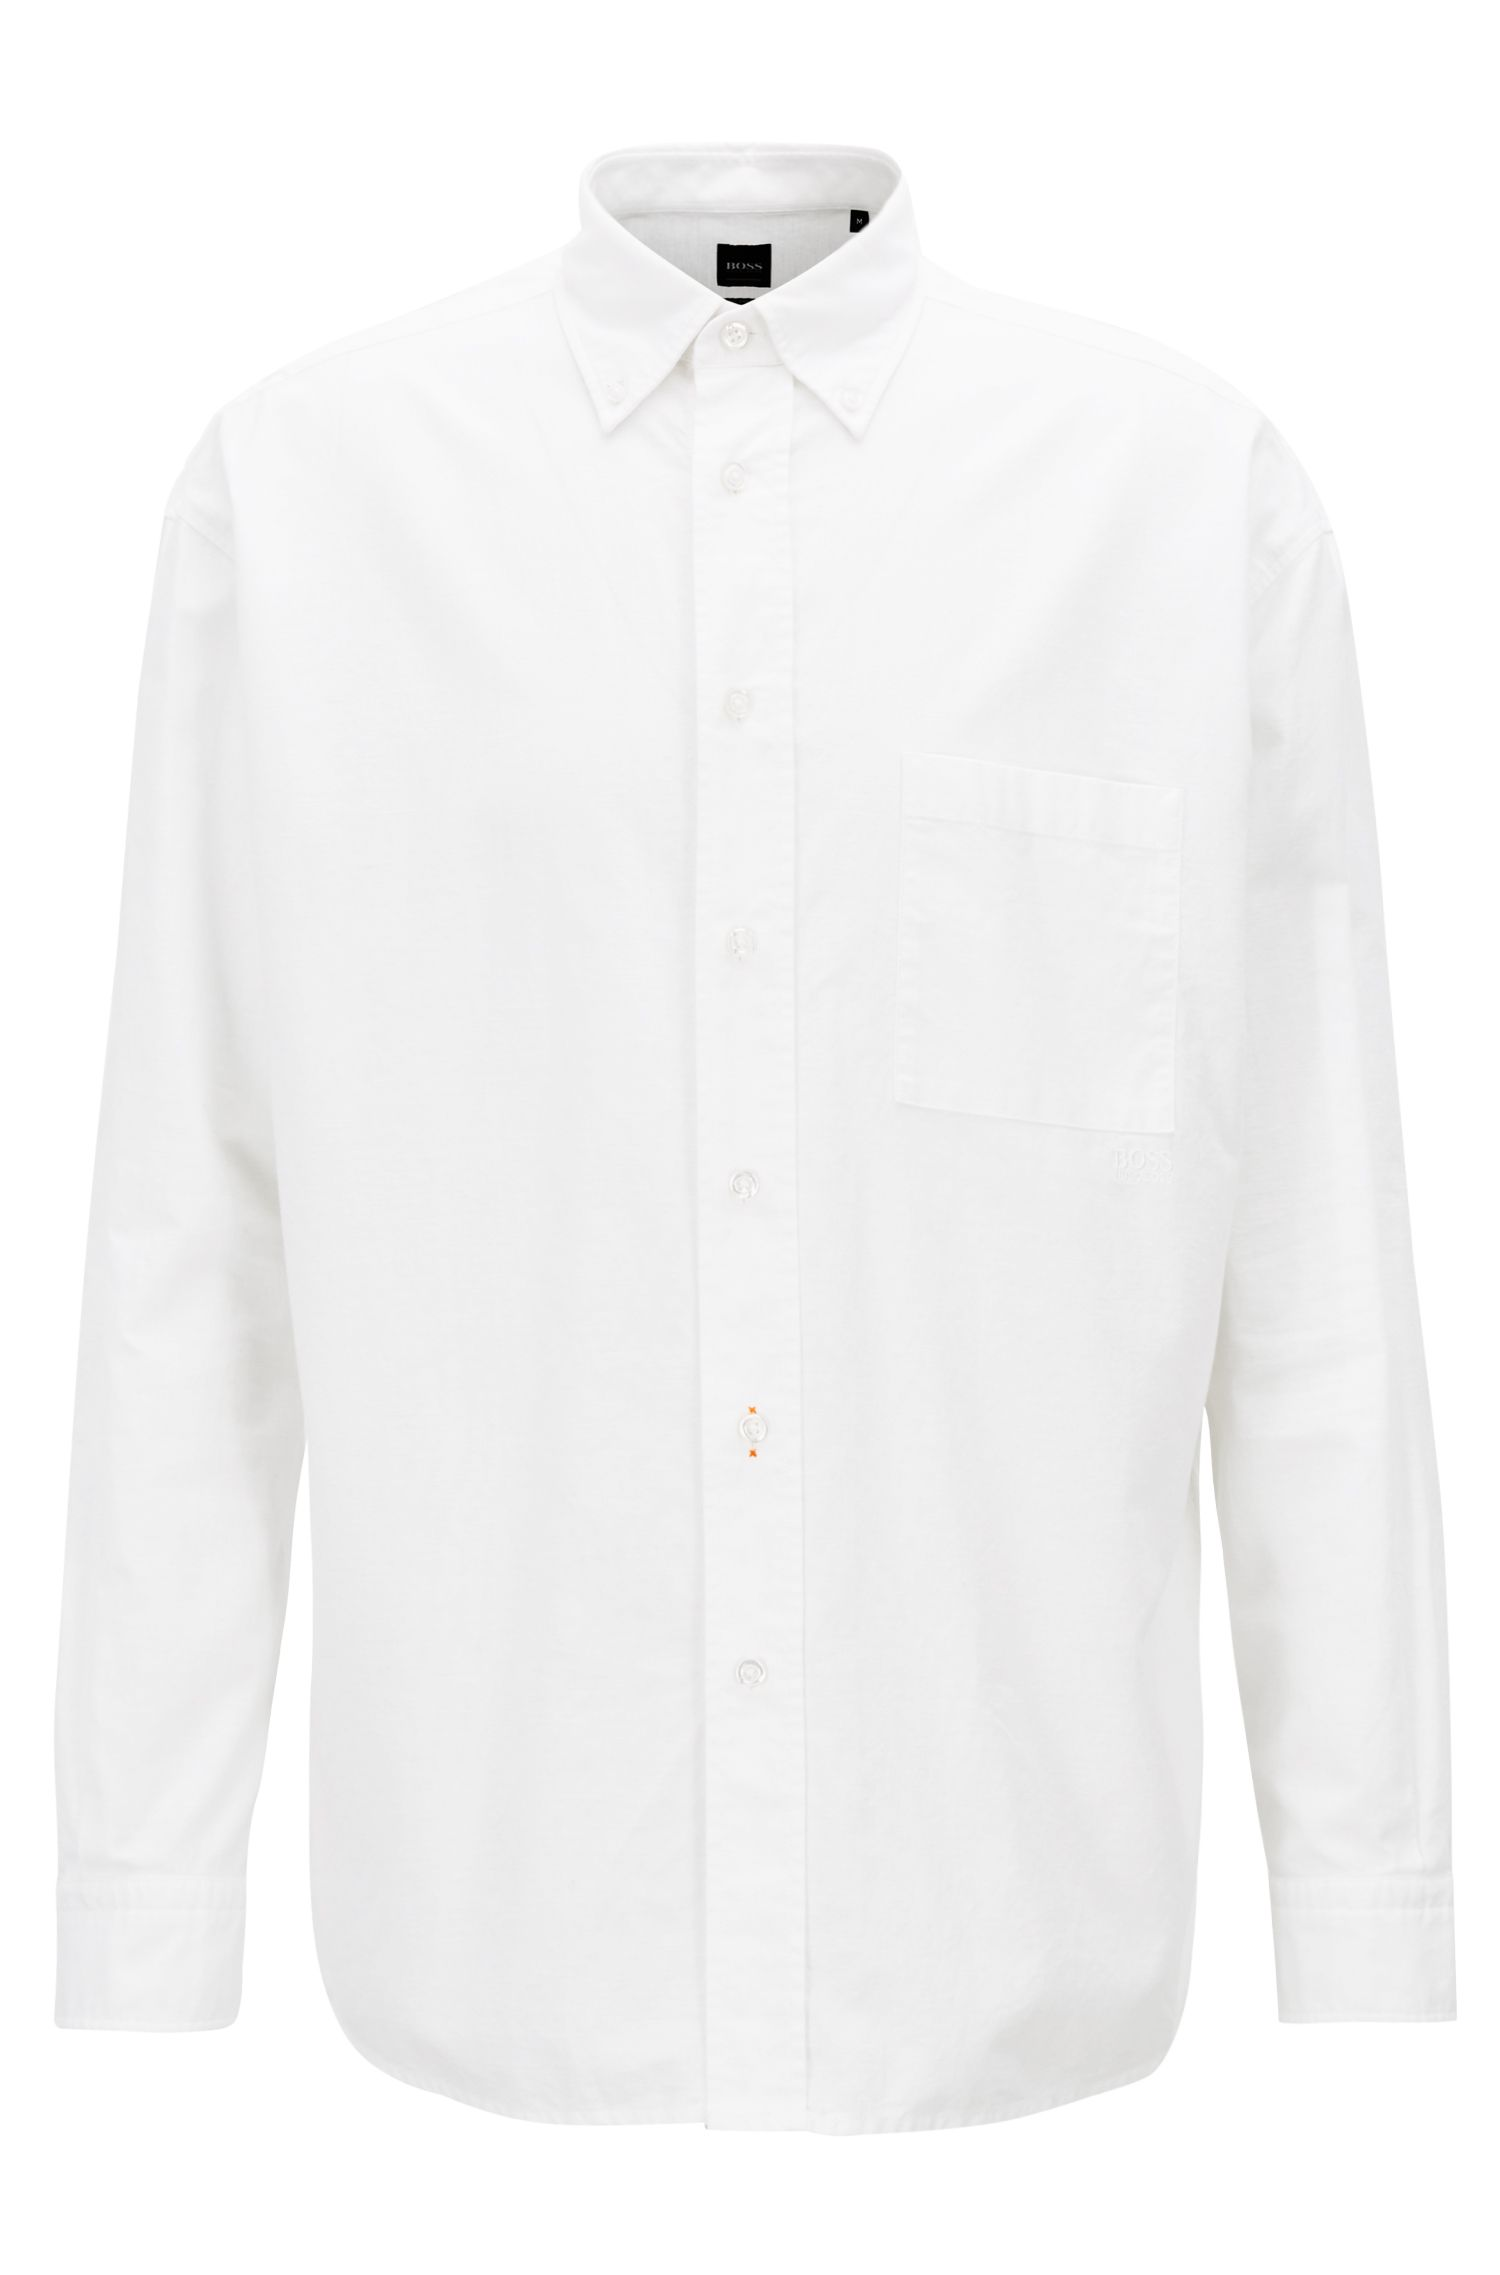 Camicia stile oxford relaxed fit con colletto button-down